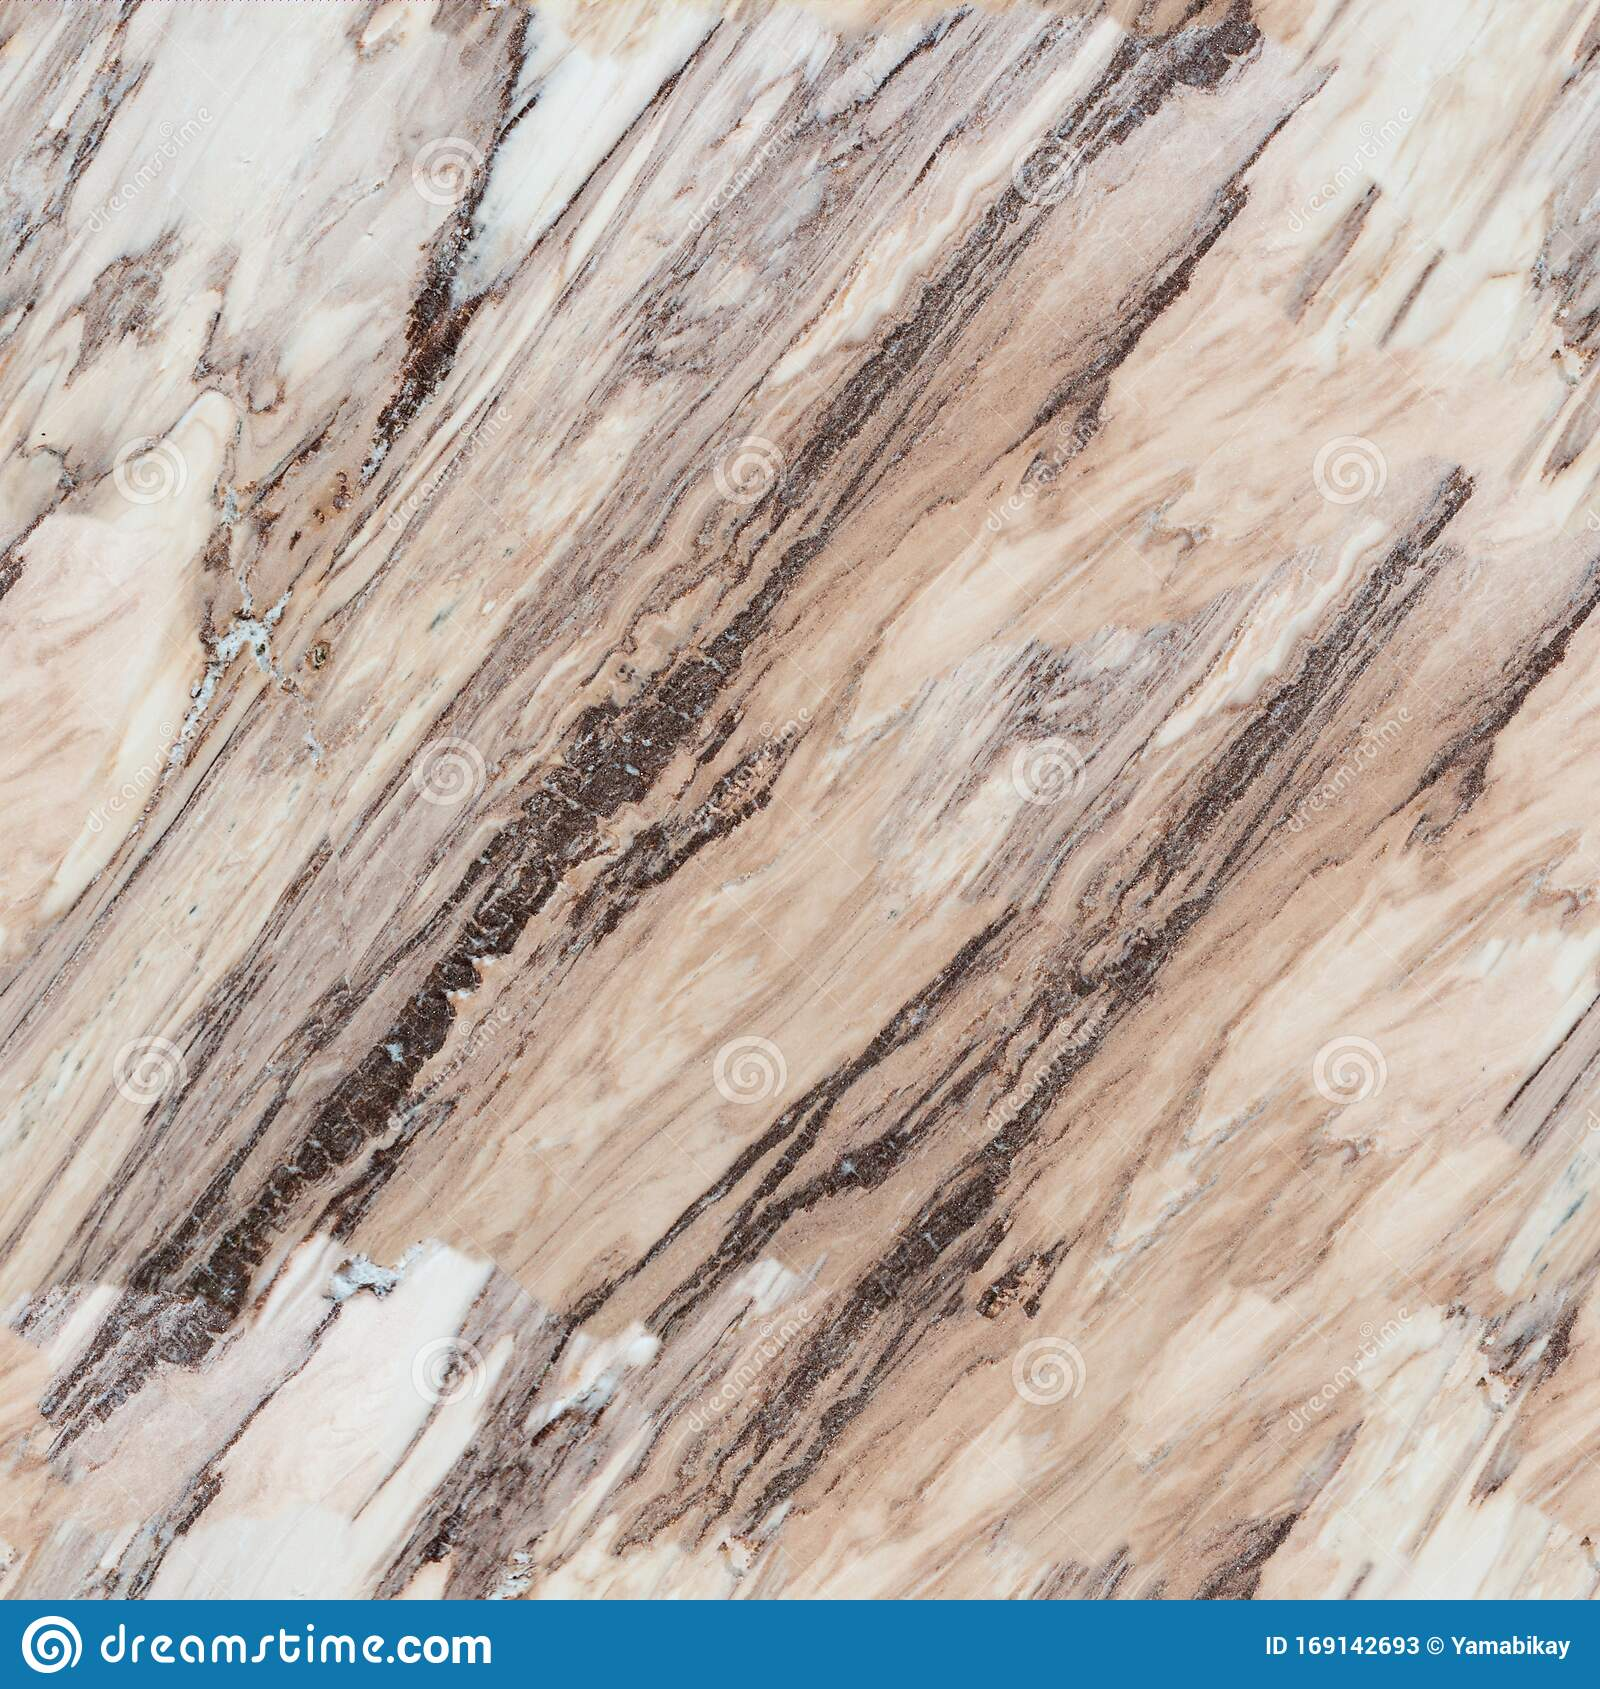 Brown Marble Texture Close Up Seamless Square Background Tile Ready Stock Image Image Of Marble Marbled 169142693